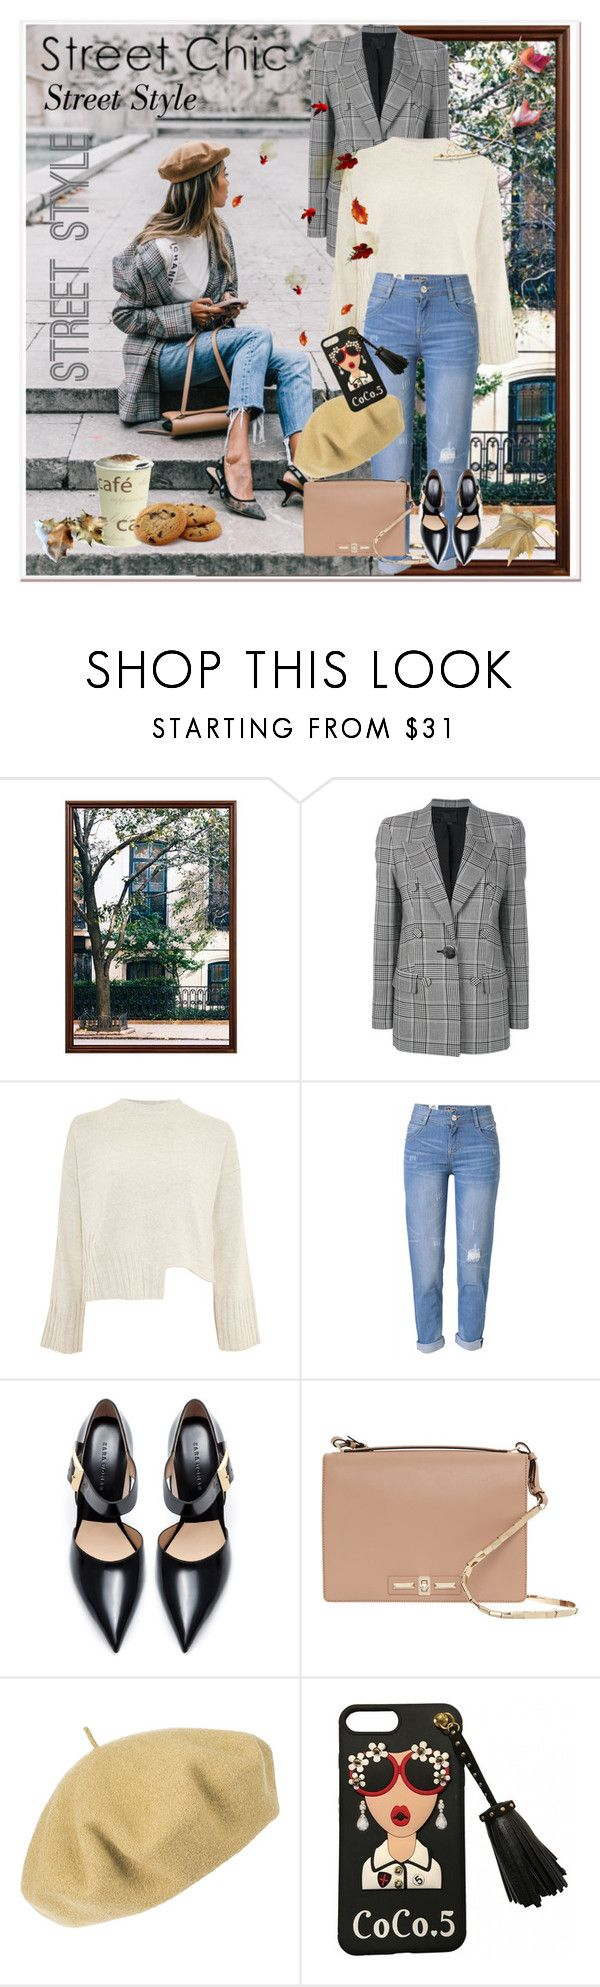 """Journi's ""Street Style Outfit"" For Contest"" by carmen-ireland ❤ liked on Polyvore featuring Pottery Barn, Alexander Wang, Topshop, WithChic, Zara, Valentino and Betmar"